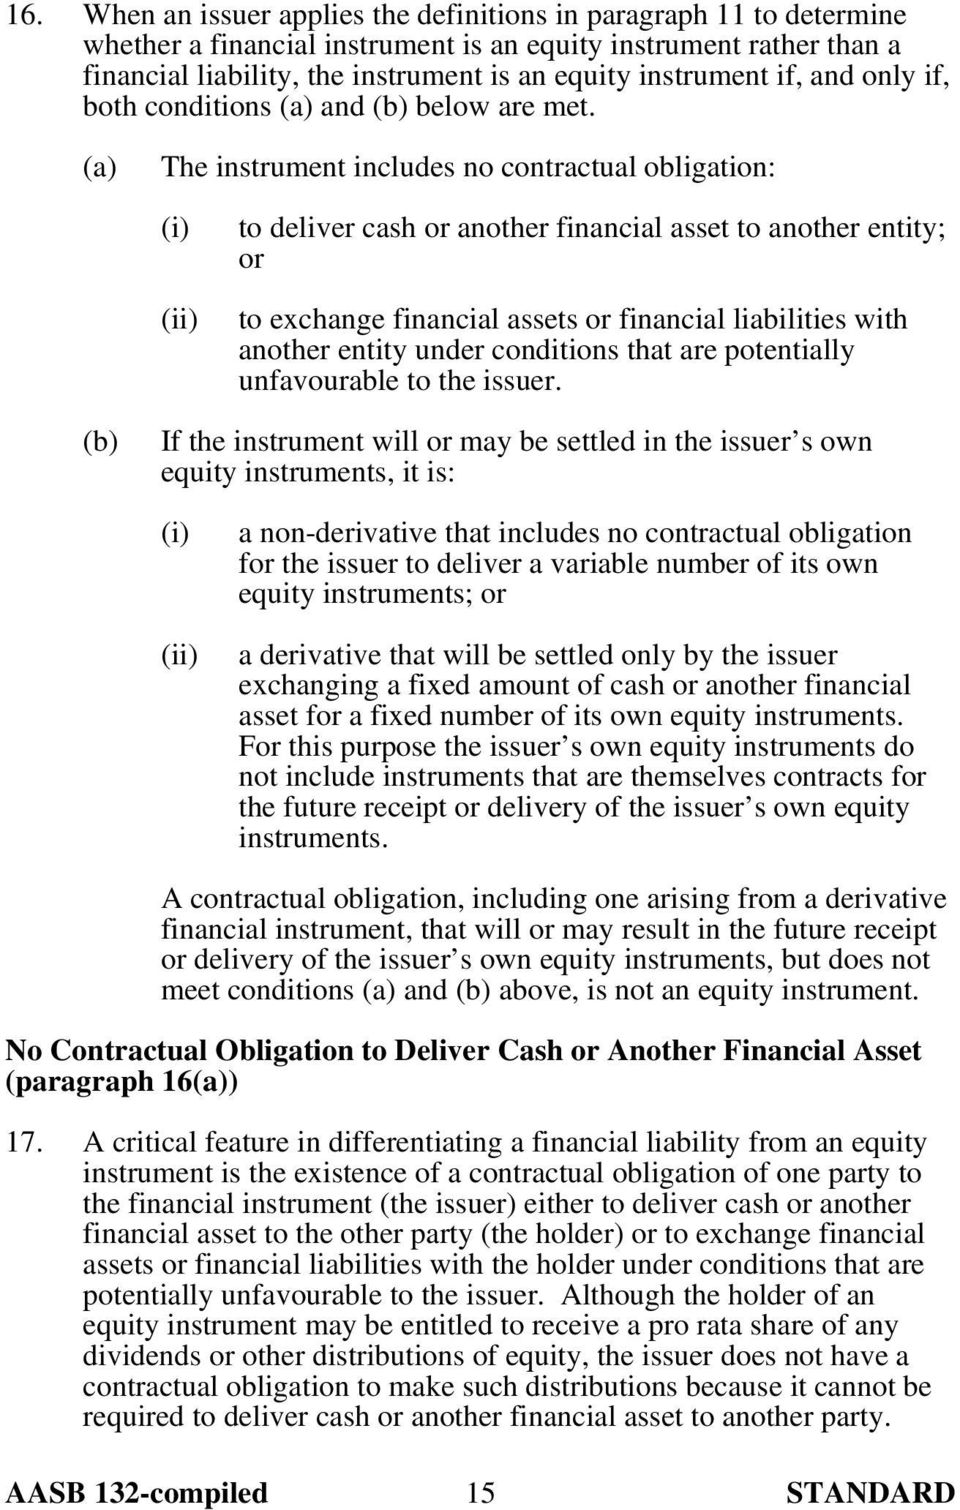 (a) The instrument includes no contractual obligation: (i) (ii) to deliver cash or another financial asset to another entity; or to exchange financial assets or financial liabilities with another